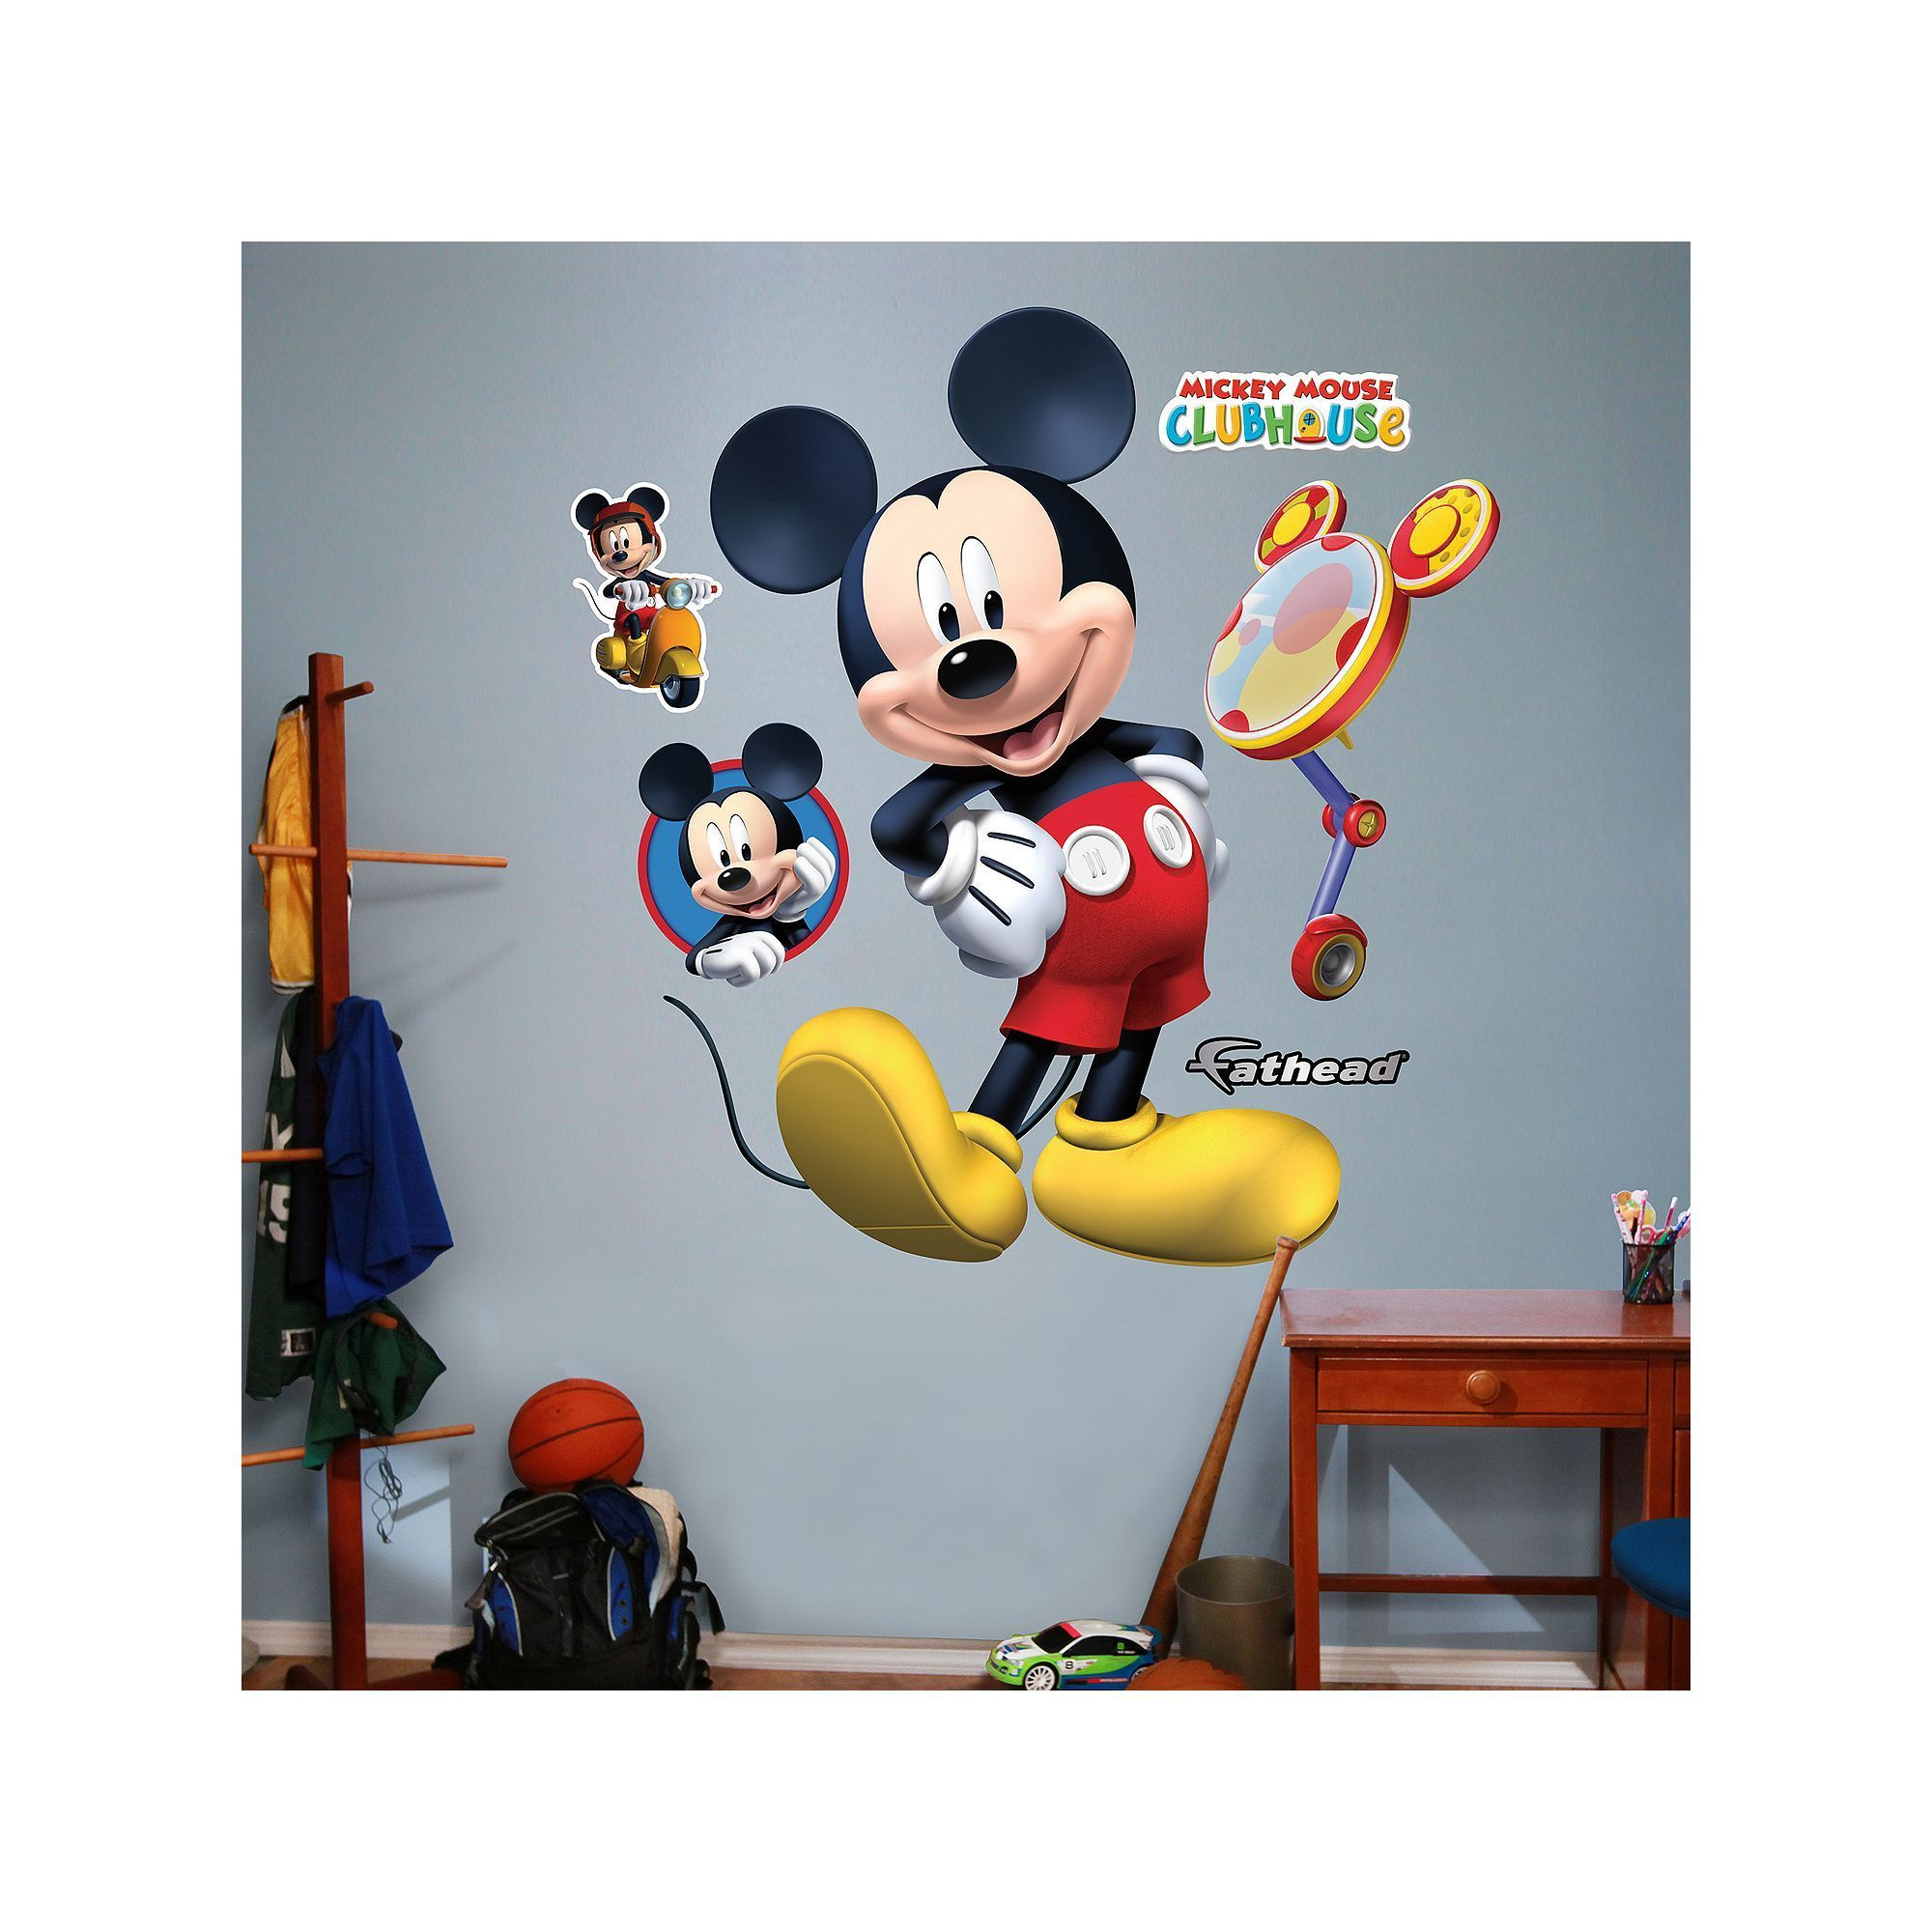 Disney Mickey Mouse Clubhouse Wall Decals By Fathead, Multicolor